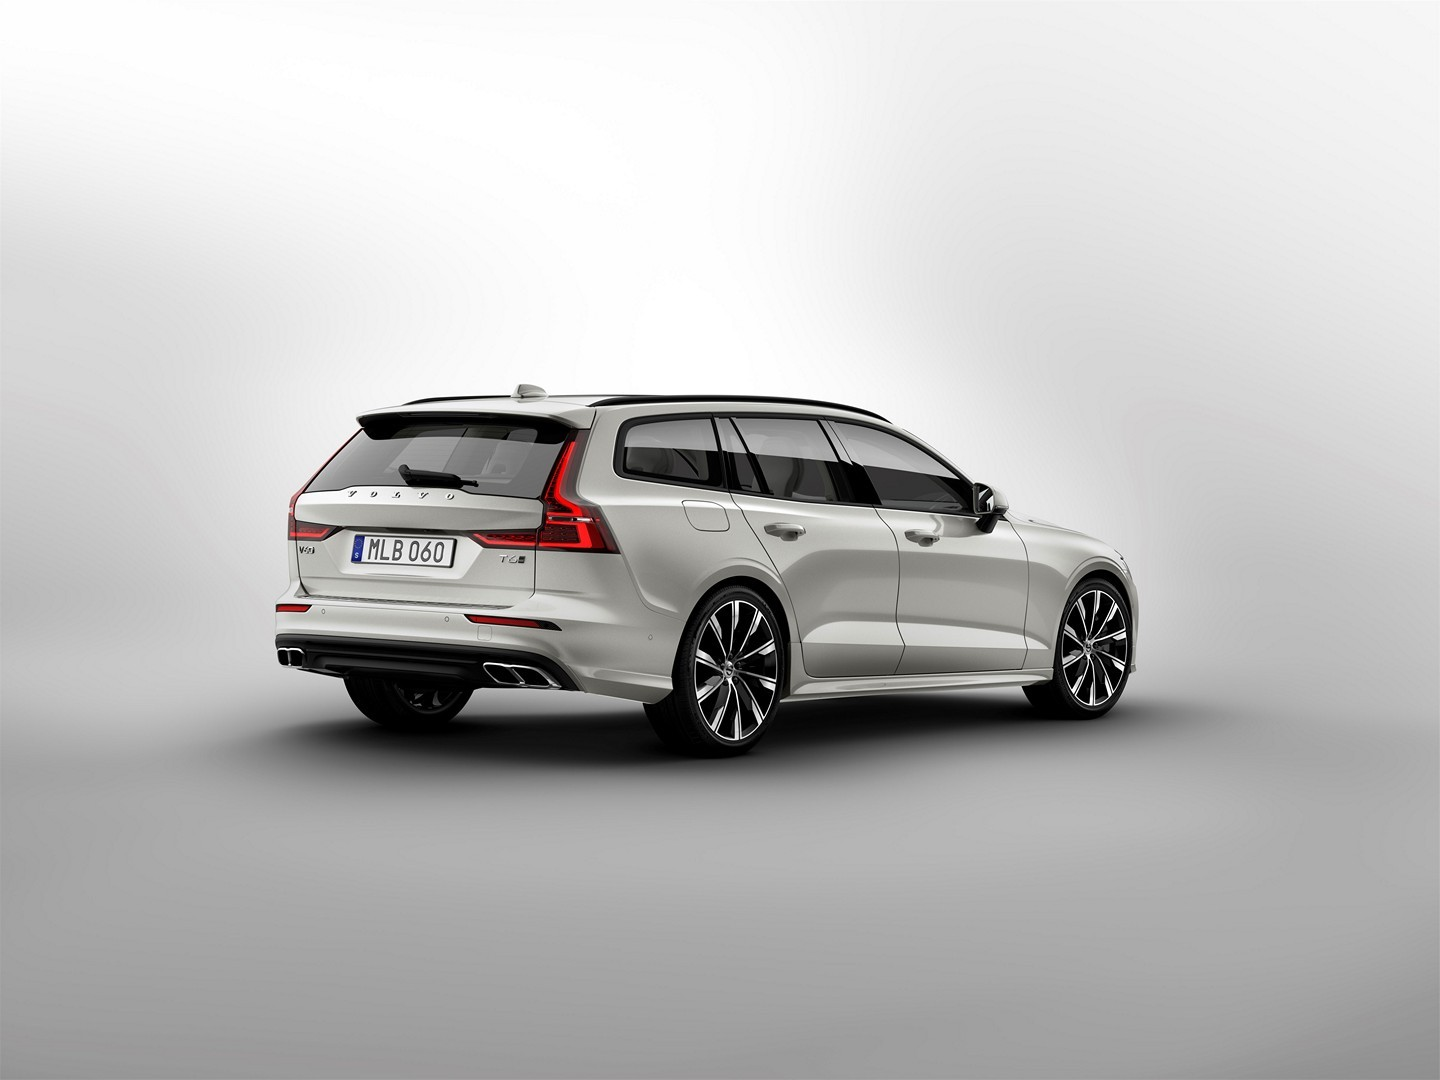 2019 volvo v60 officially unveiled sexy wagon gets two phev engines autoevolution. Black Bedroom Furniture Sets. Home Design Ideas